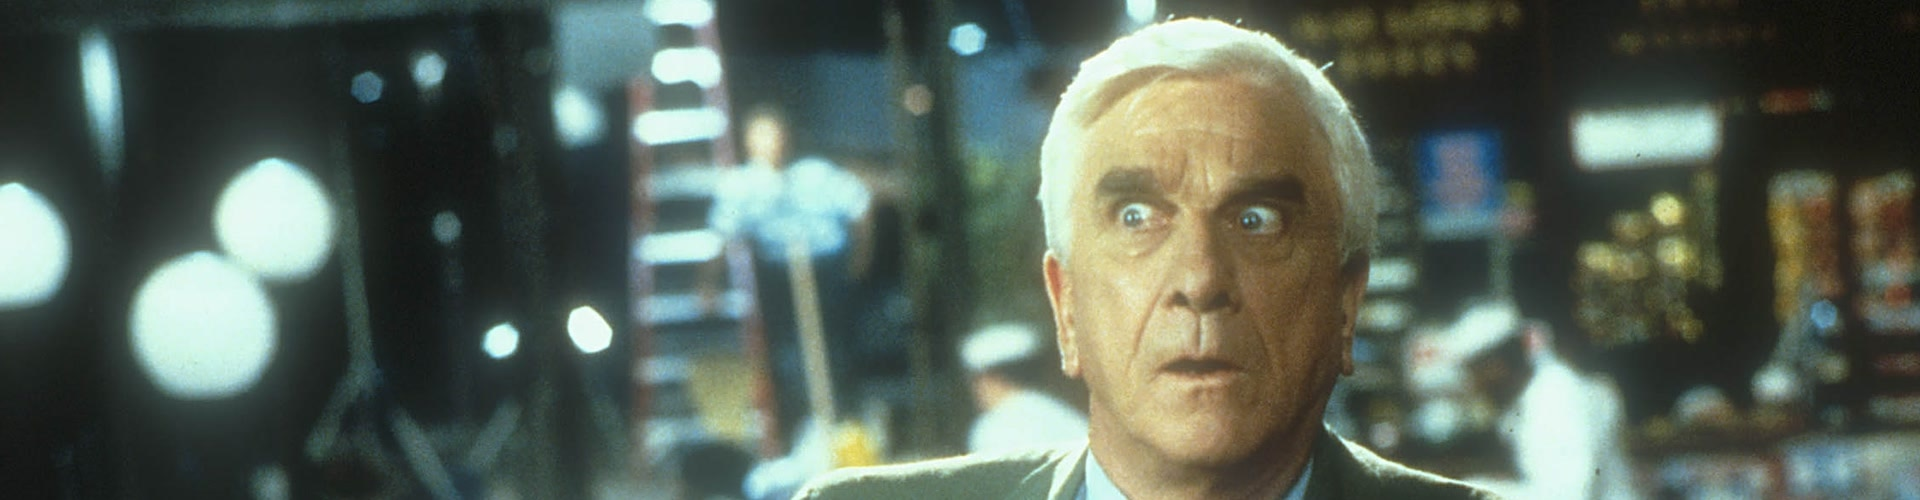 Watch Naked Gun 33 1/3: The Final Insult Online